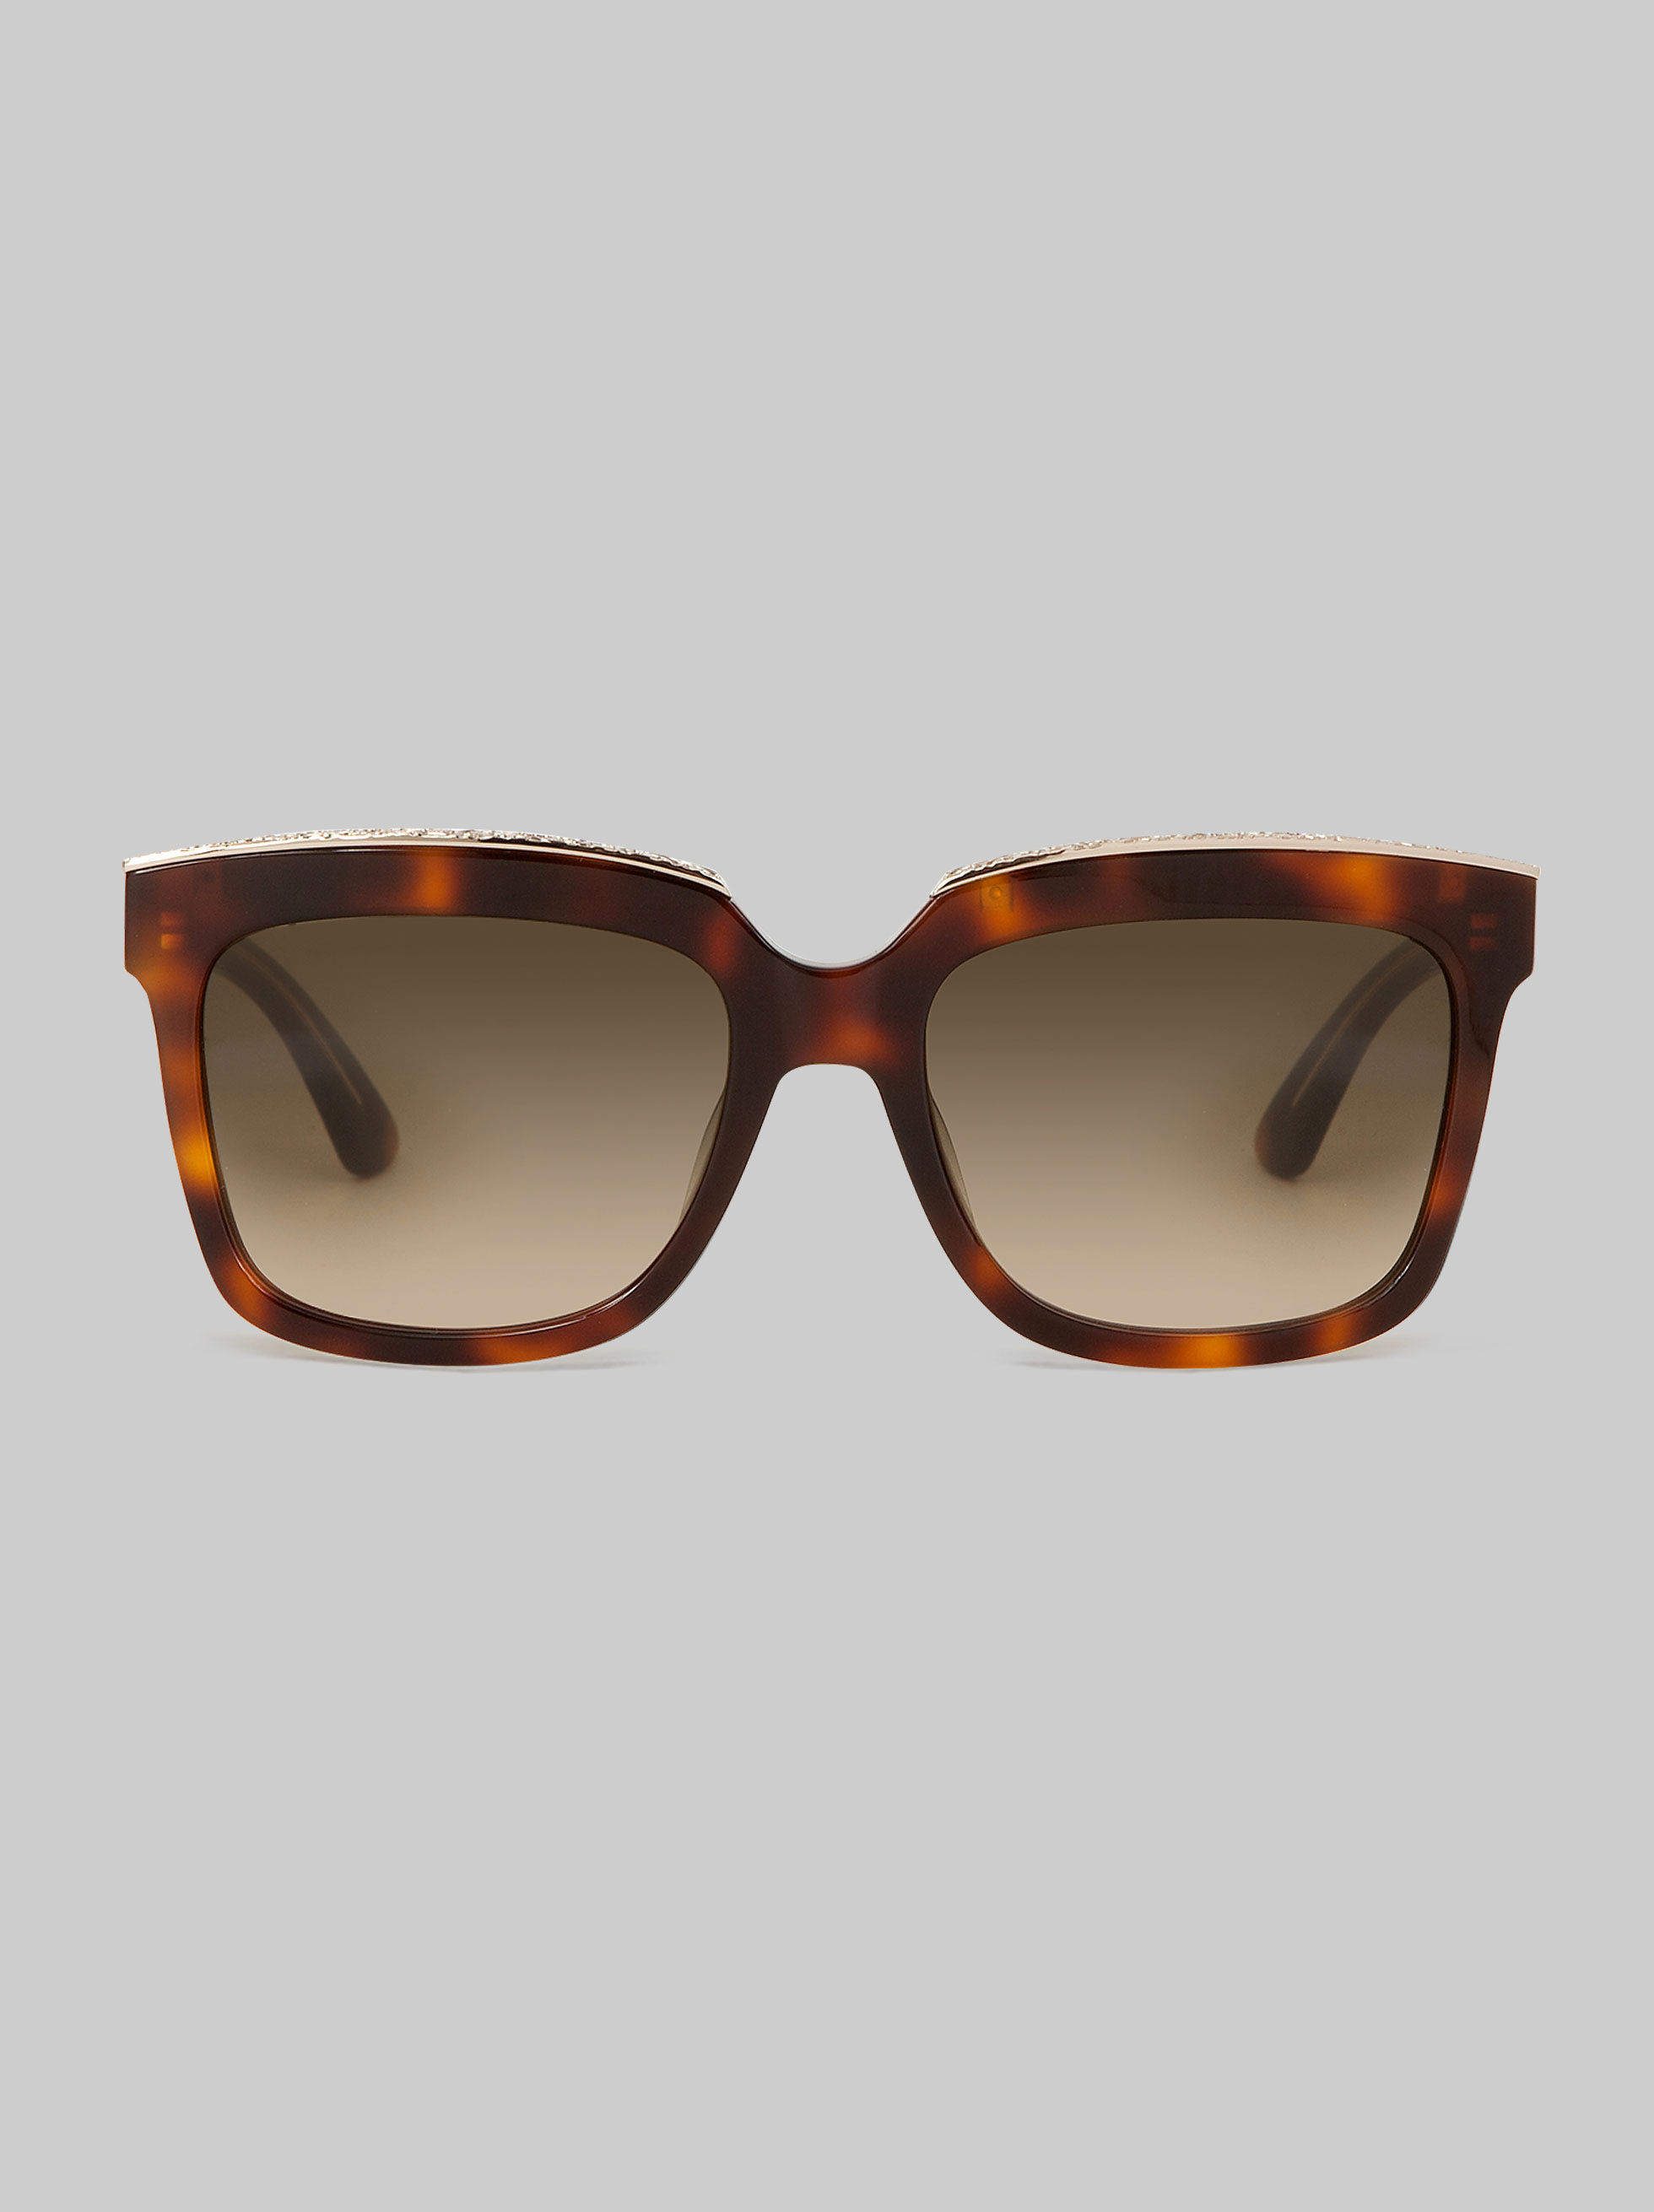 RECTANGULAR-FRAME SUNGLASSES WITH PAISLEY MOTIF